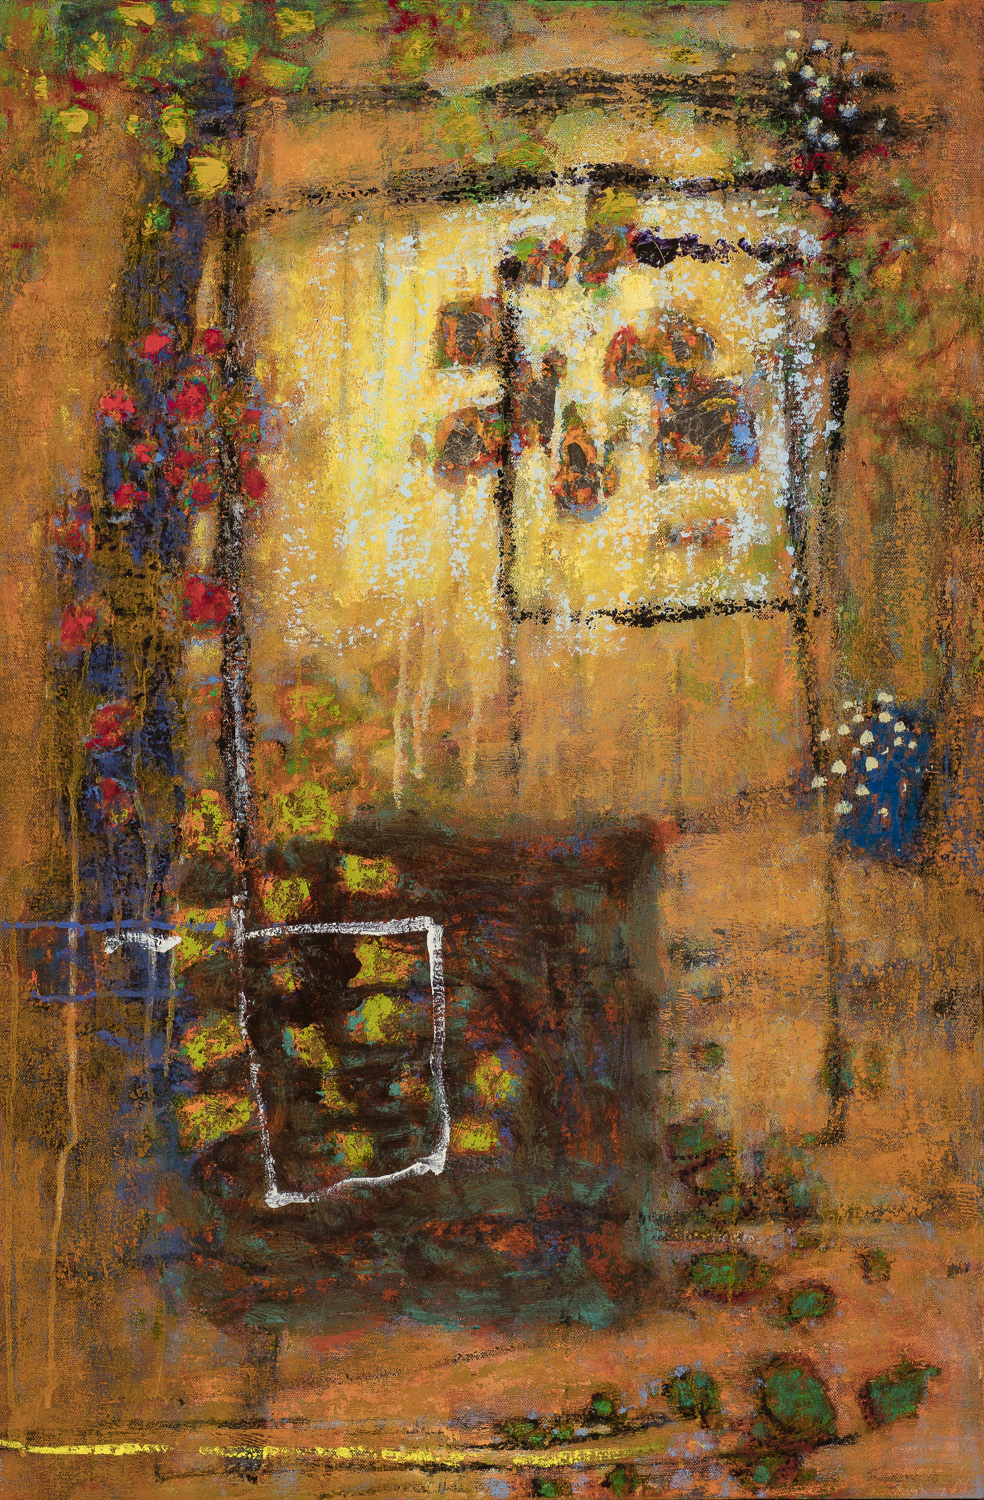 Light and Ground   | oil on canvas | 30 x 20"